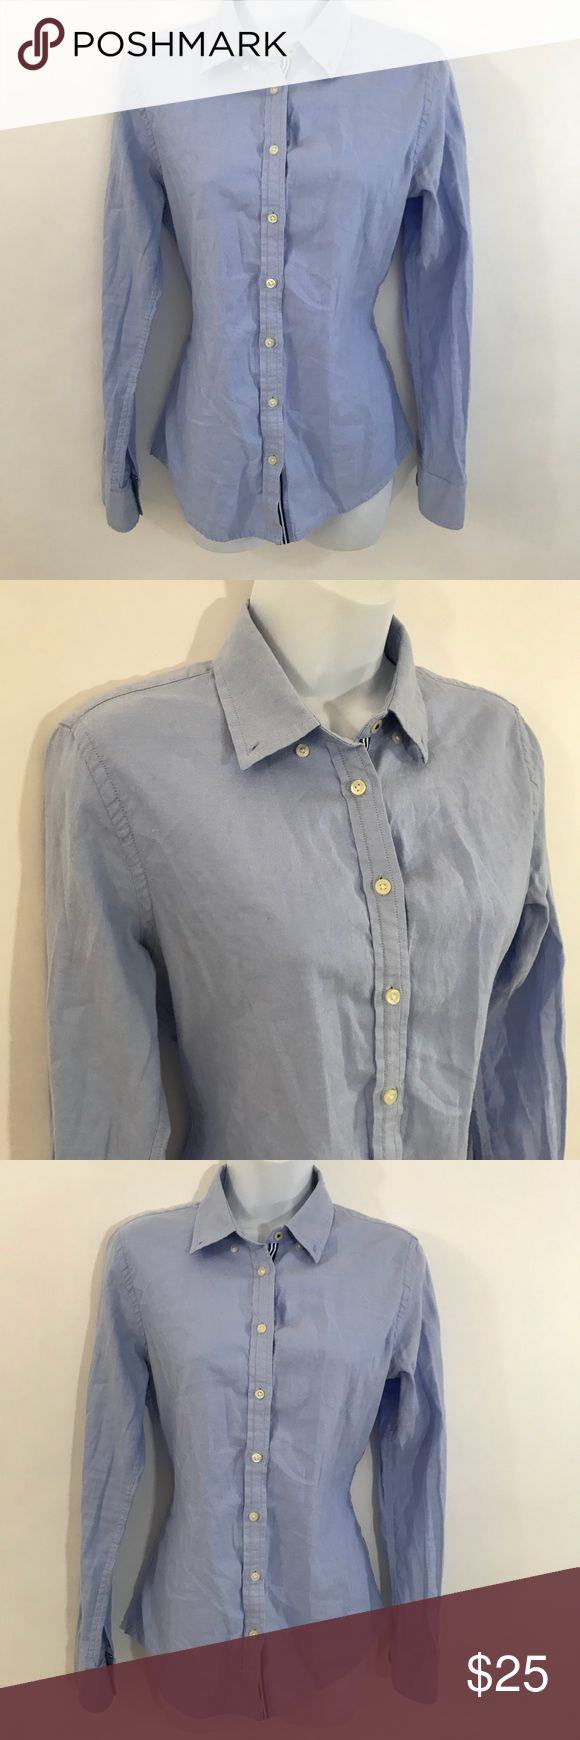 Banana Republic Oxford Shirt Button Down Small Banana Republic Oxford Shirt Womens Button Down Size Small Blue Light Wash Bust 18 inches length 25 inches Banana Republic Tops Button Down Shirts